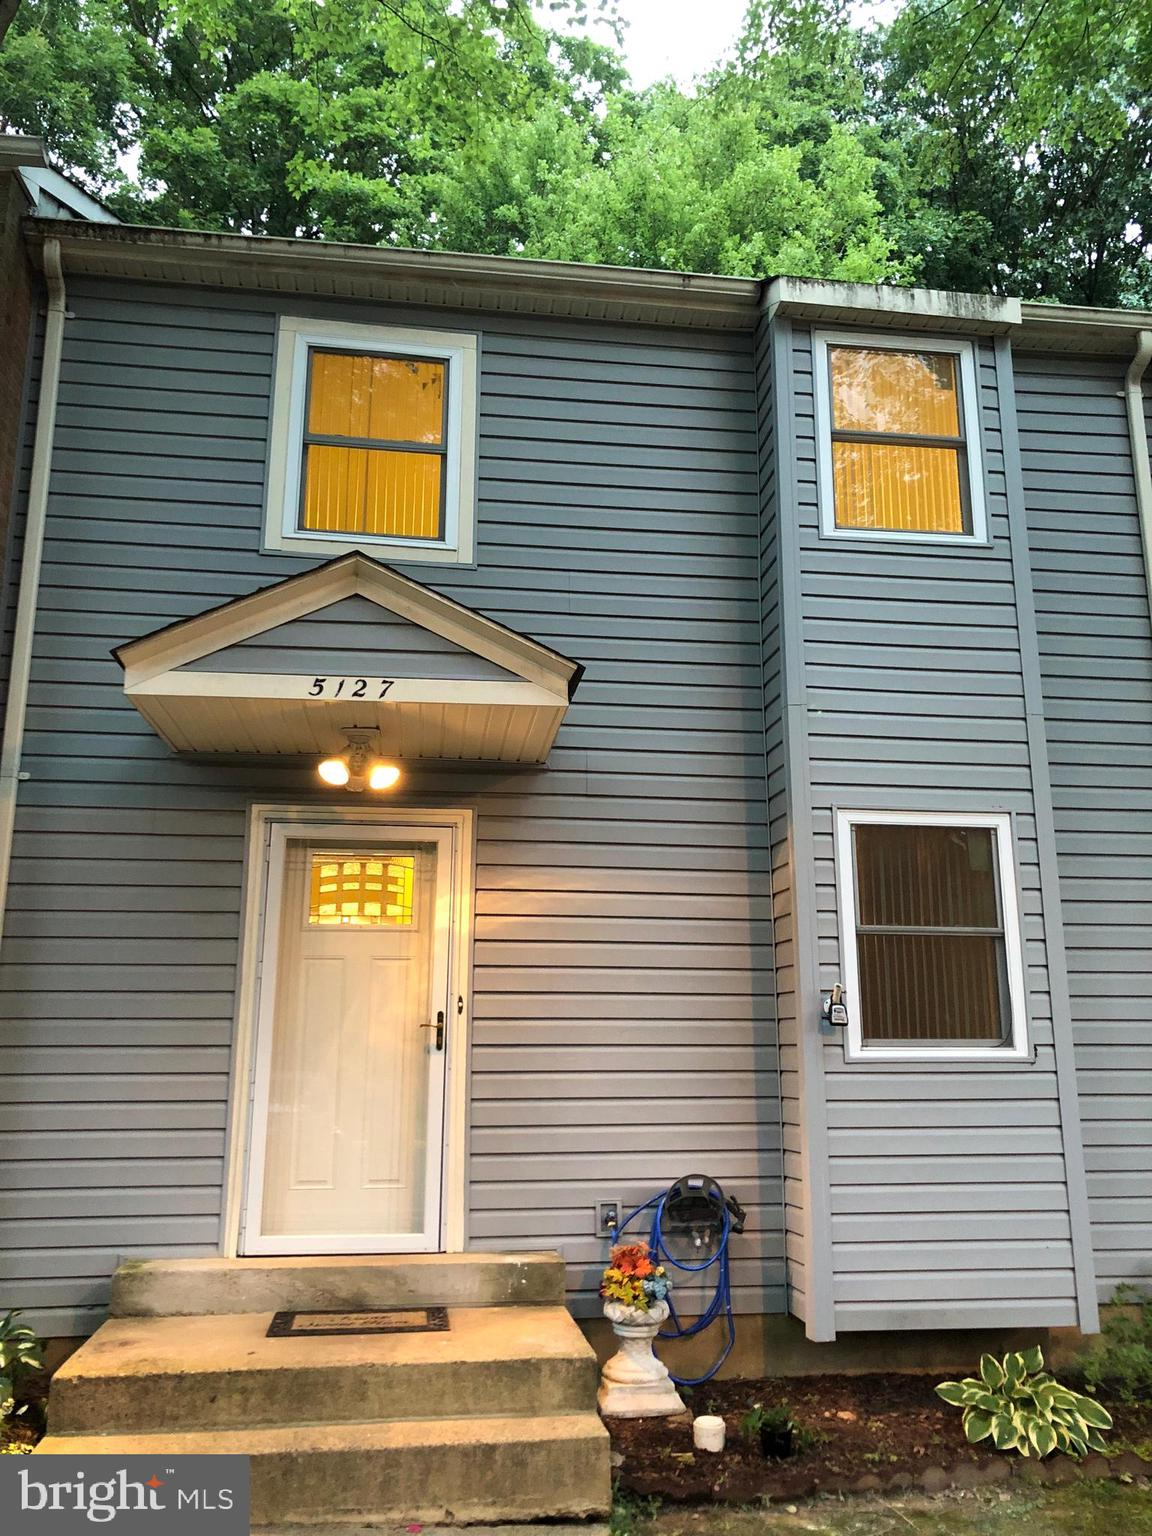 **OFFERS DUE TUESDAY 9/10 AT 3PM** Charming two-bedroom, two and half bath townhouse with renovated kitchen and a re-finished back deck for entertaining! Includes a finished basement that could be used as flex space such as a bedroom, media room, entertaining space with bar or second living area. One full bathroom in the basement. Last tenant used the basement as an extra bedroom.Kitchen is currently being renovated with stainless steel appliances, quartz countertops, built in wall mounted microwave. Back deck is being modified to add some steps down to the yard, and is being sanded and repainted also. Located near Lake Braddock, the community has tennis courts and a community pool. Also located near jogging trails. Close to George Mason University, and the bus stop nearby goes directly to the Pentagon. Also located near the VRE railroad station. Many commuter options located nearby.